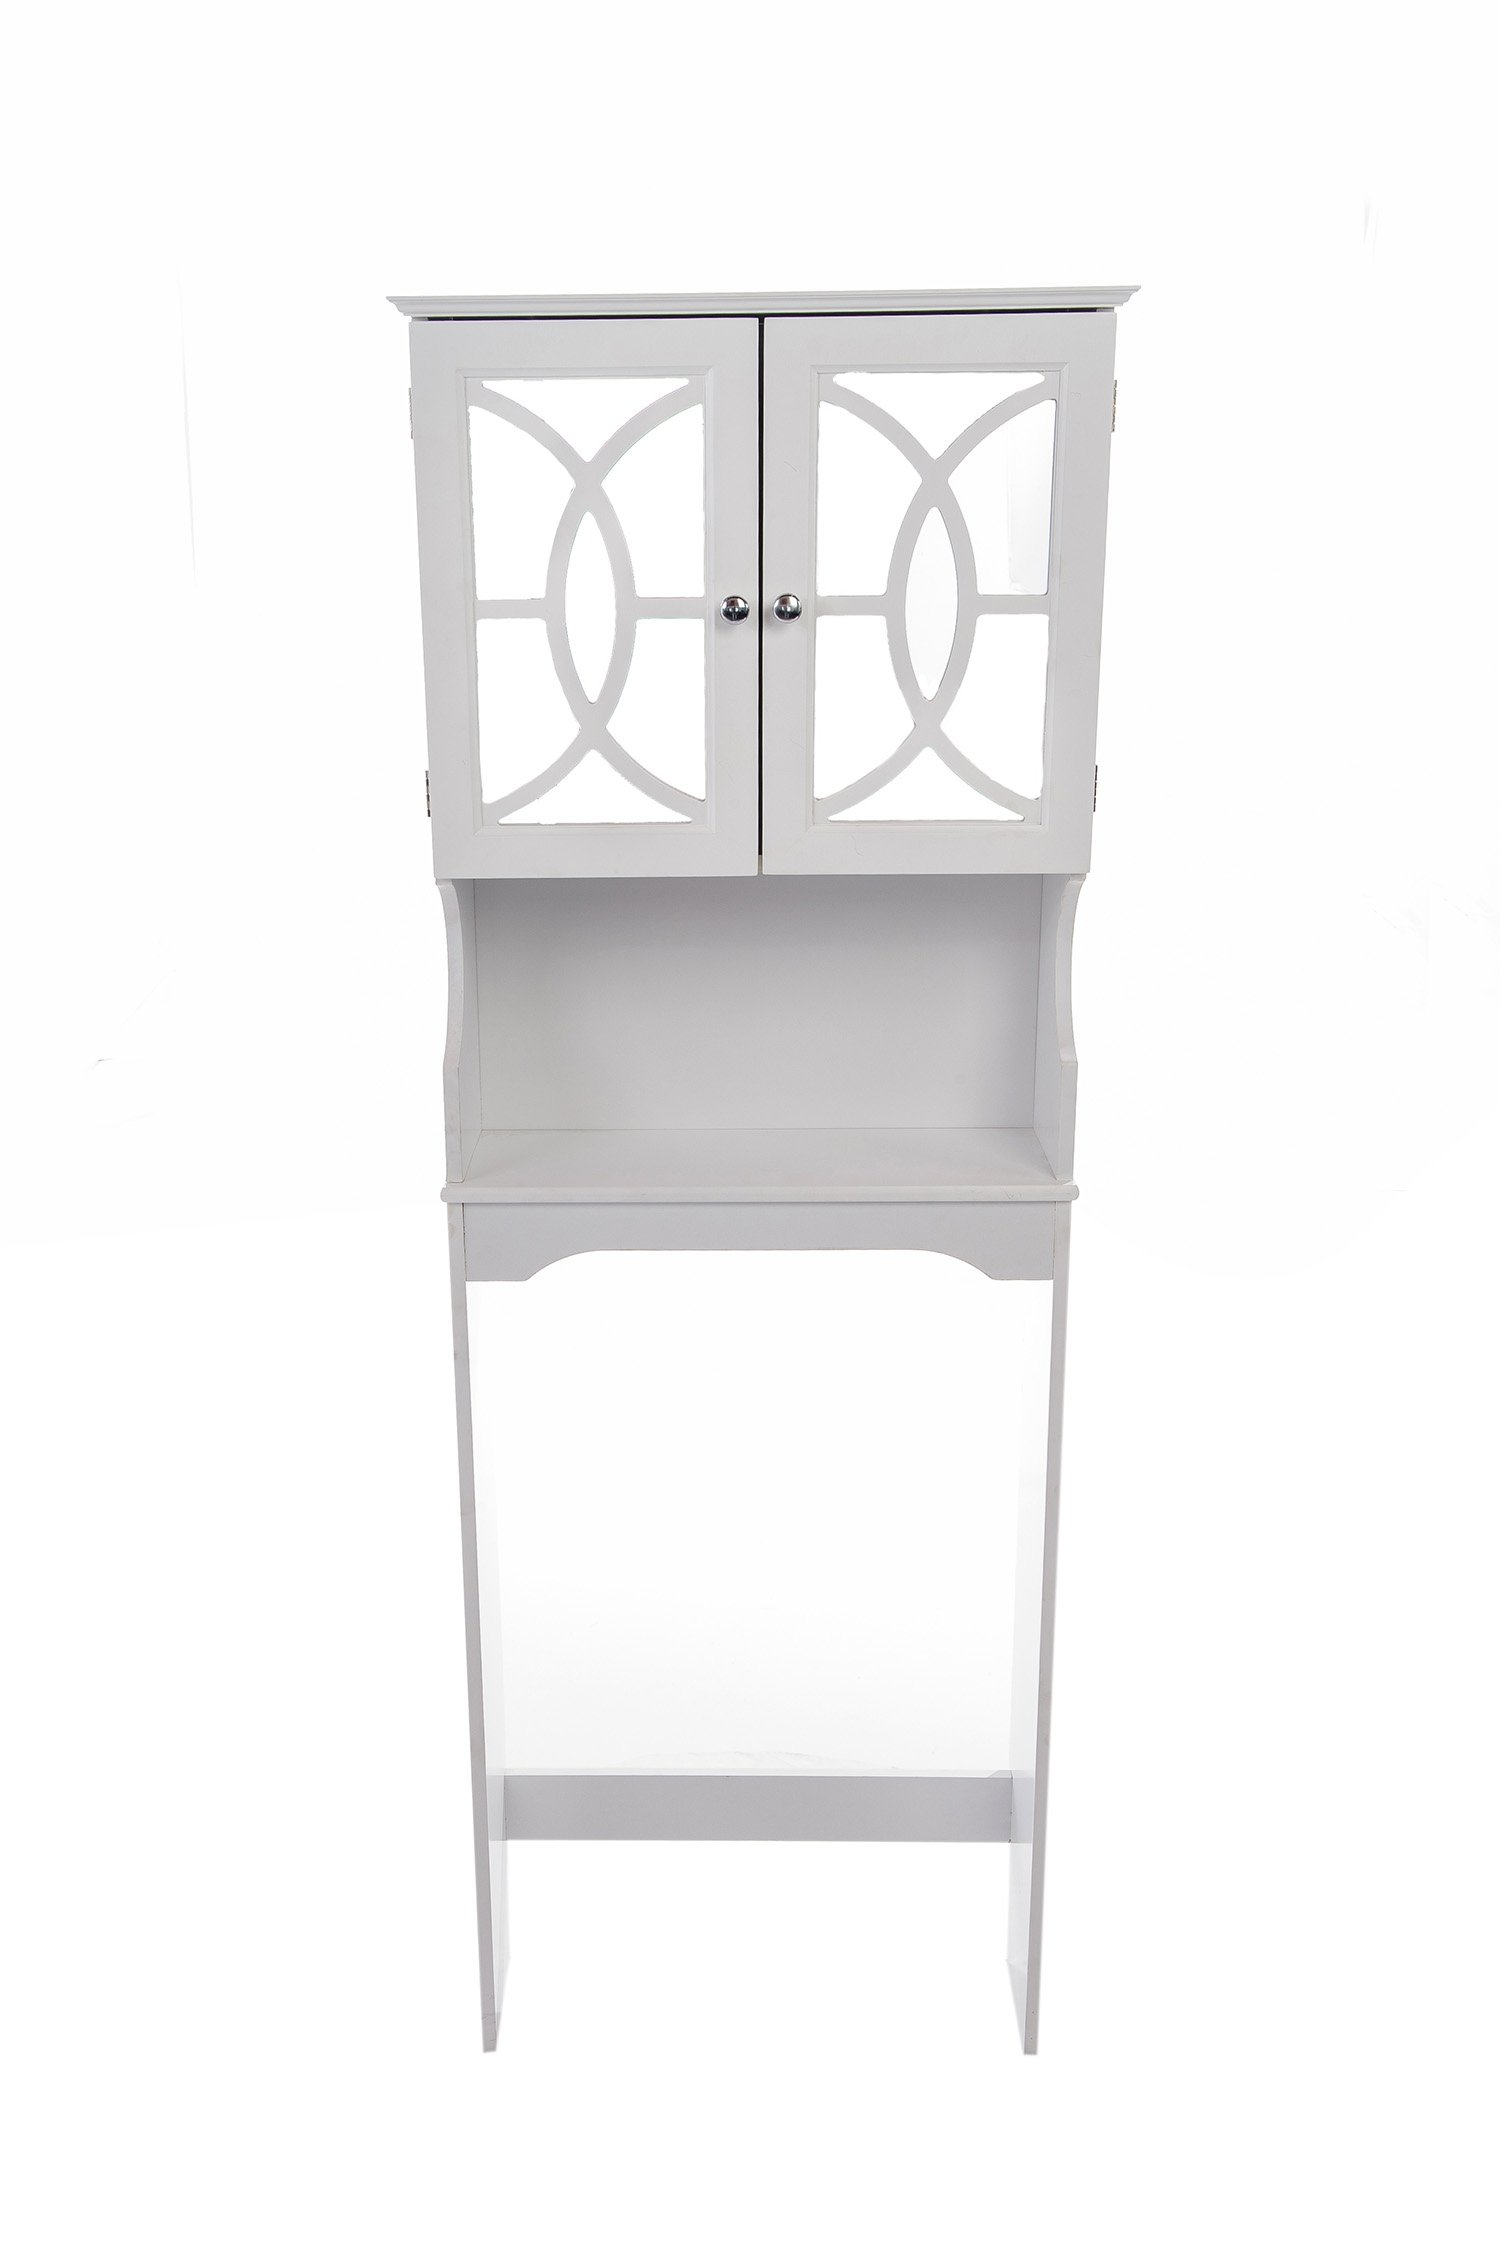 Home Source Industries 5196 Bathroom Space Saver with Shelf and 2-Door Mirrored Cabinet, White by Home Source Industries